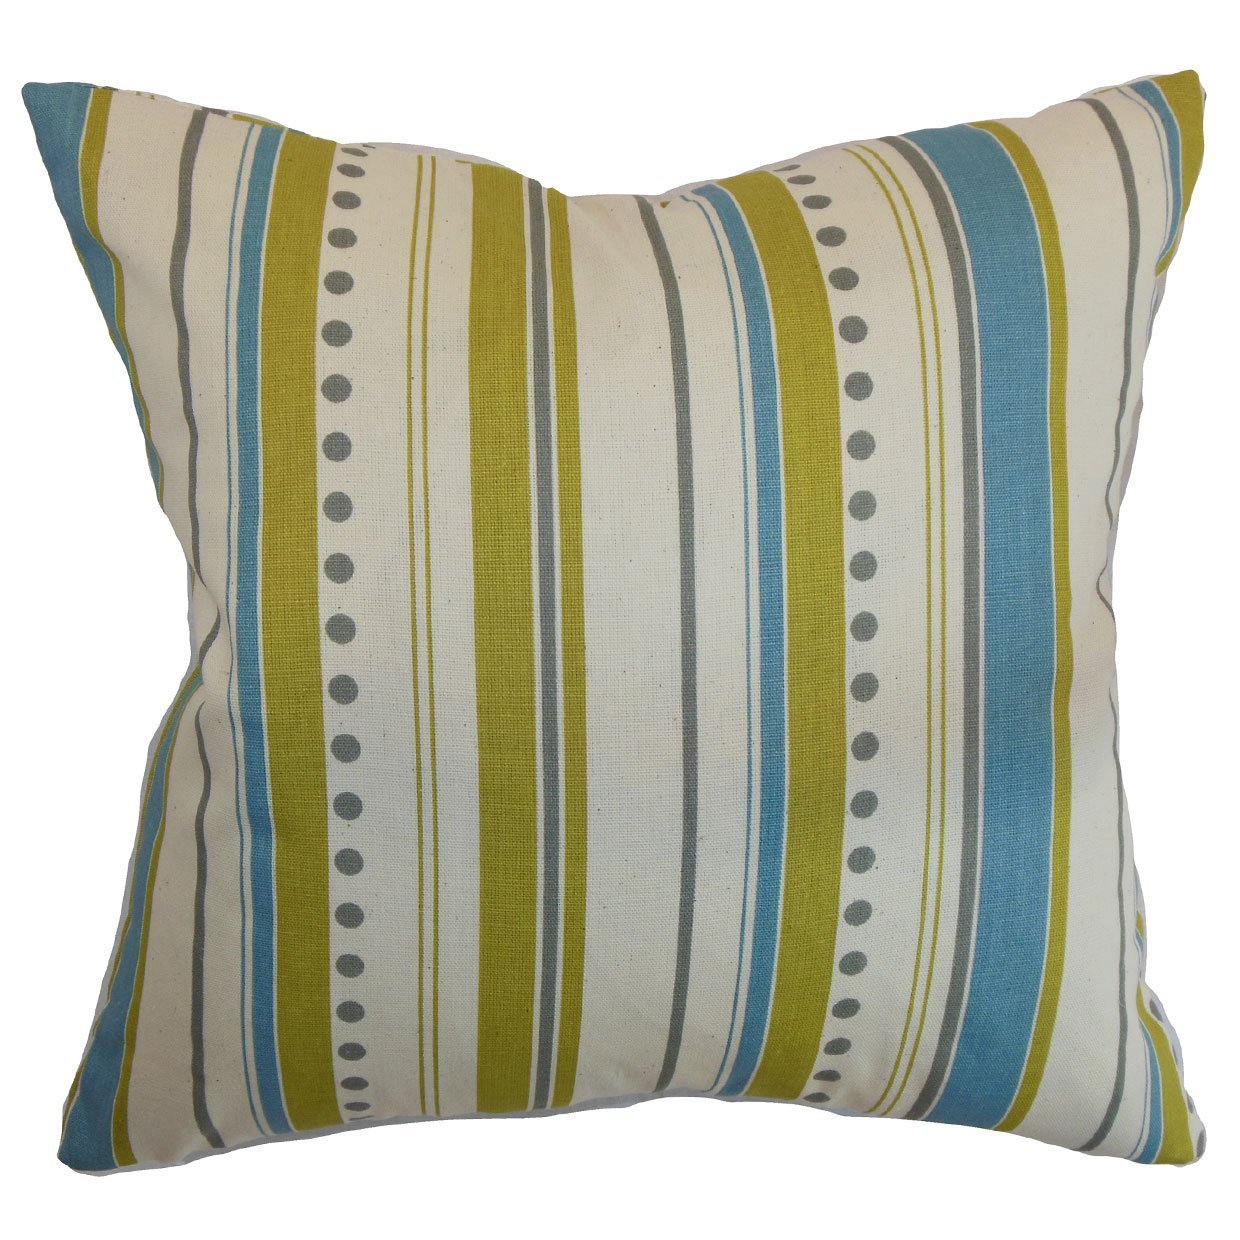 The Pillow Collection Hearst Stripes Bedding Sham Summerland Natural King//20 x 36